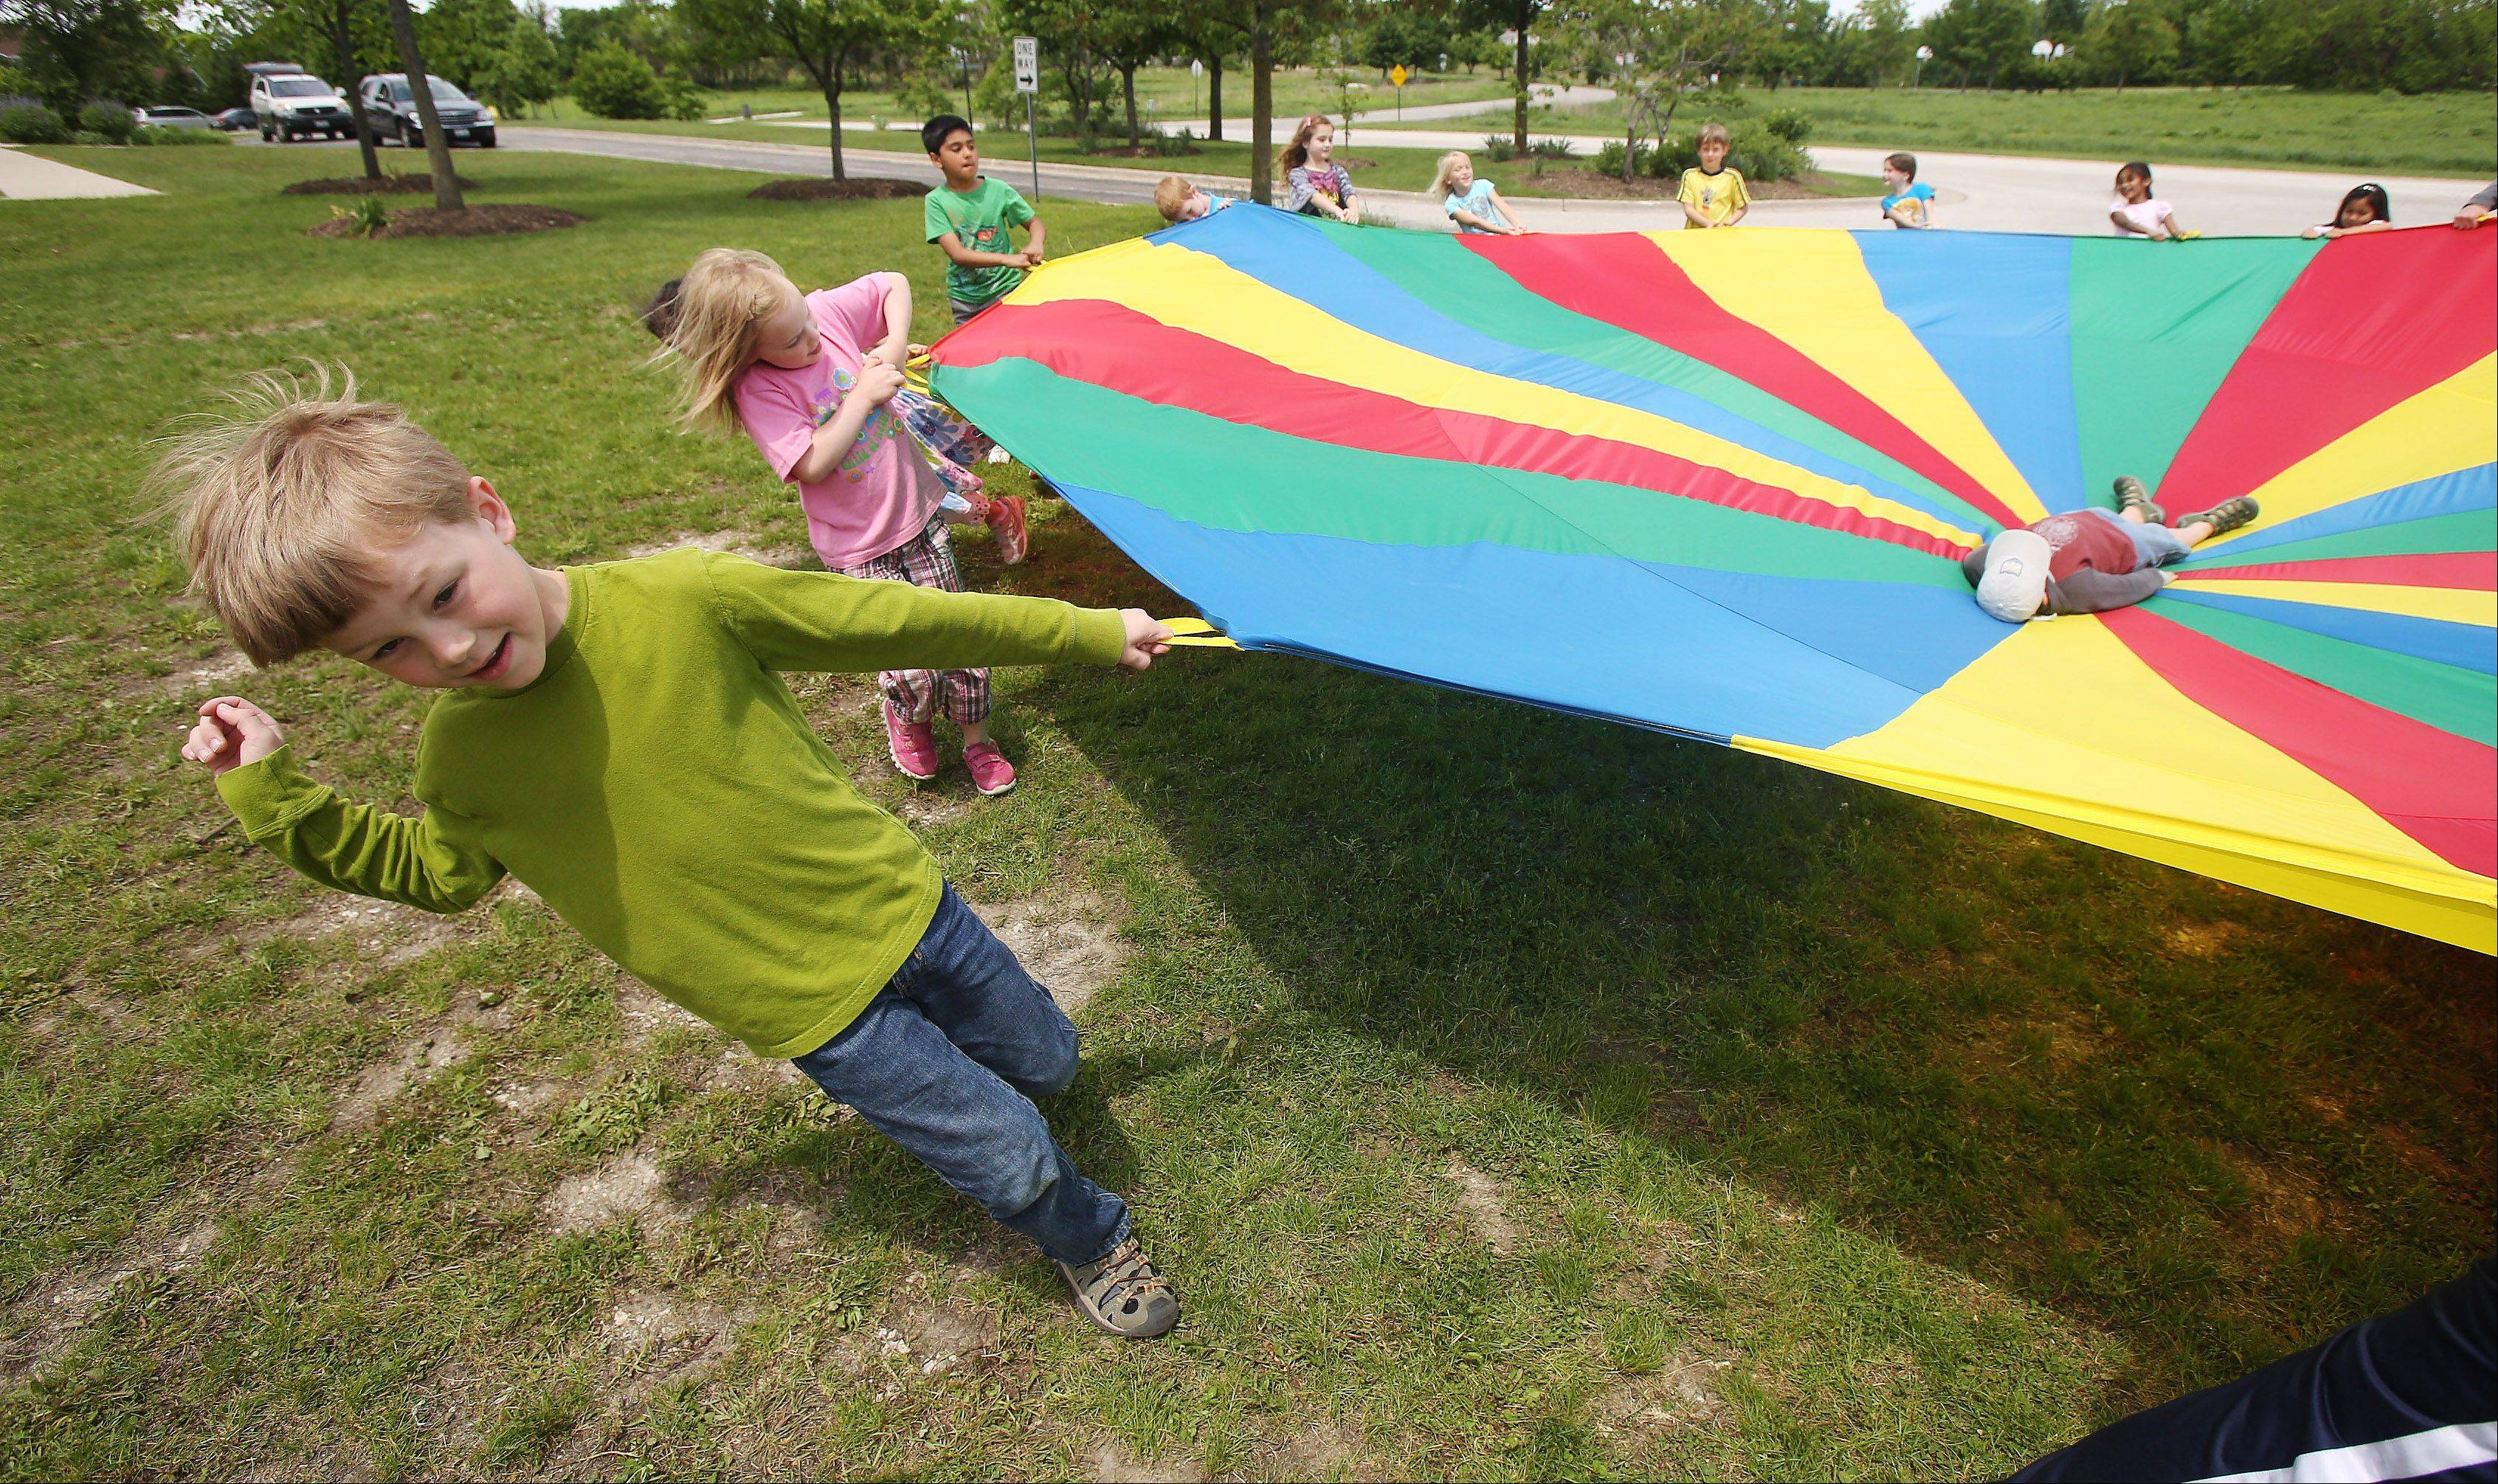 First graders Isaac Berski, left, and Mae Anderson, join classmates as they play with a parachute during Field Day Tuesday at Prairie Crossing Charter School in Grayslake.